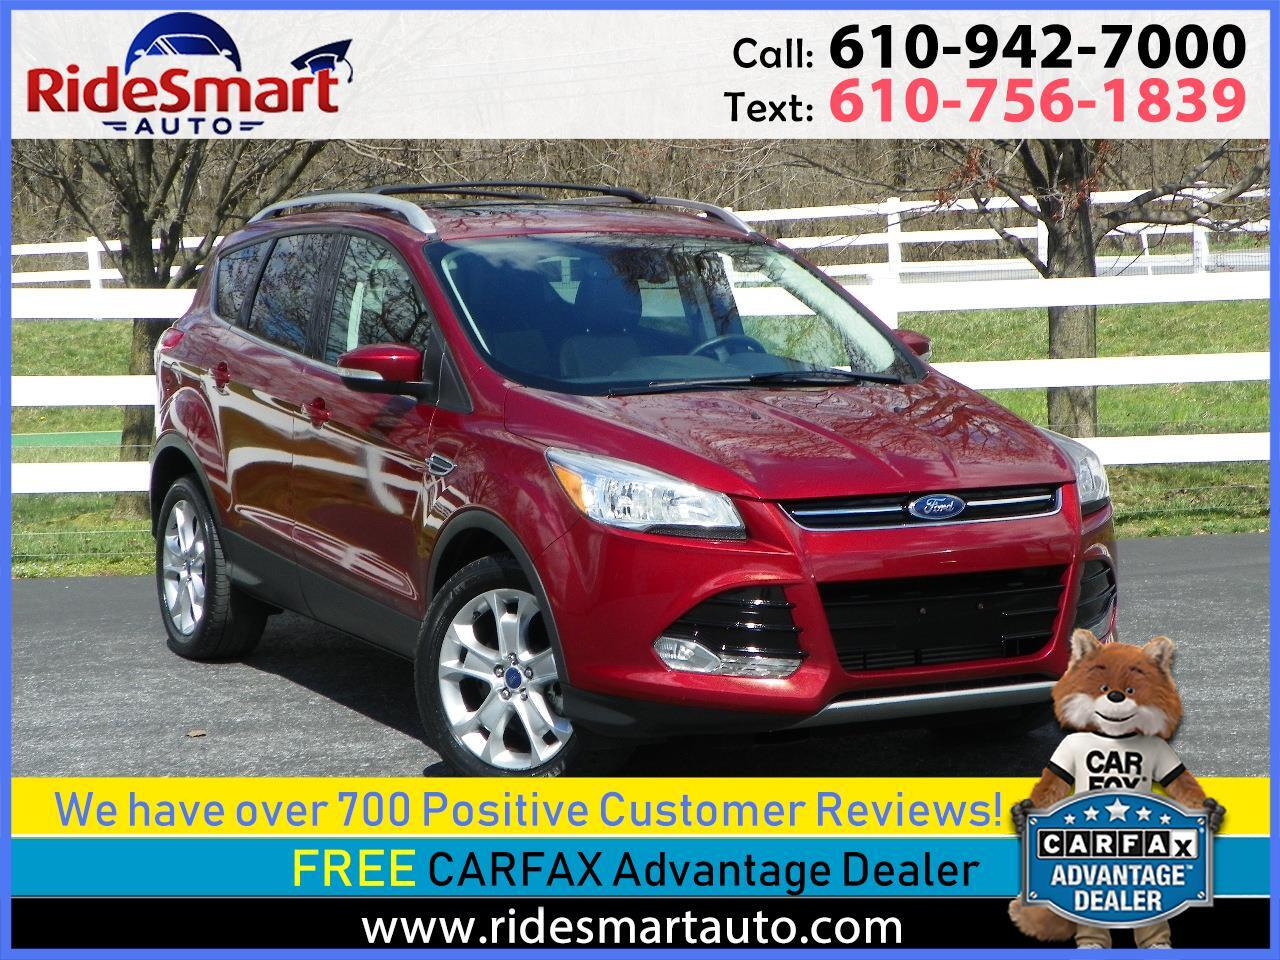 2016 Ford Escape Titanium 4WD 2.0L Nav-Leather-Pano Roof